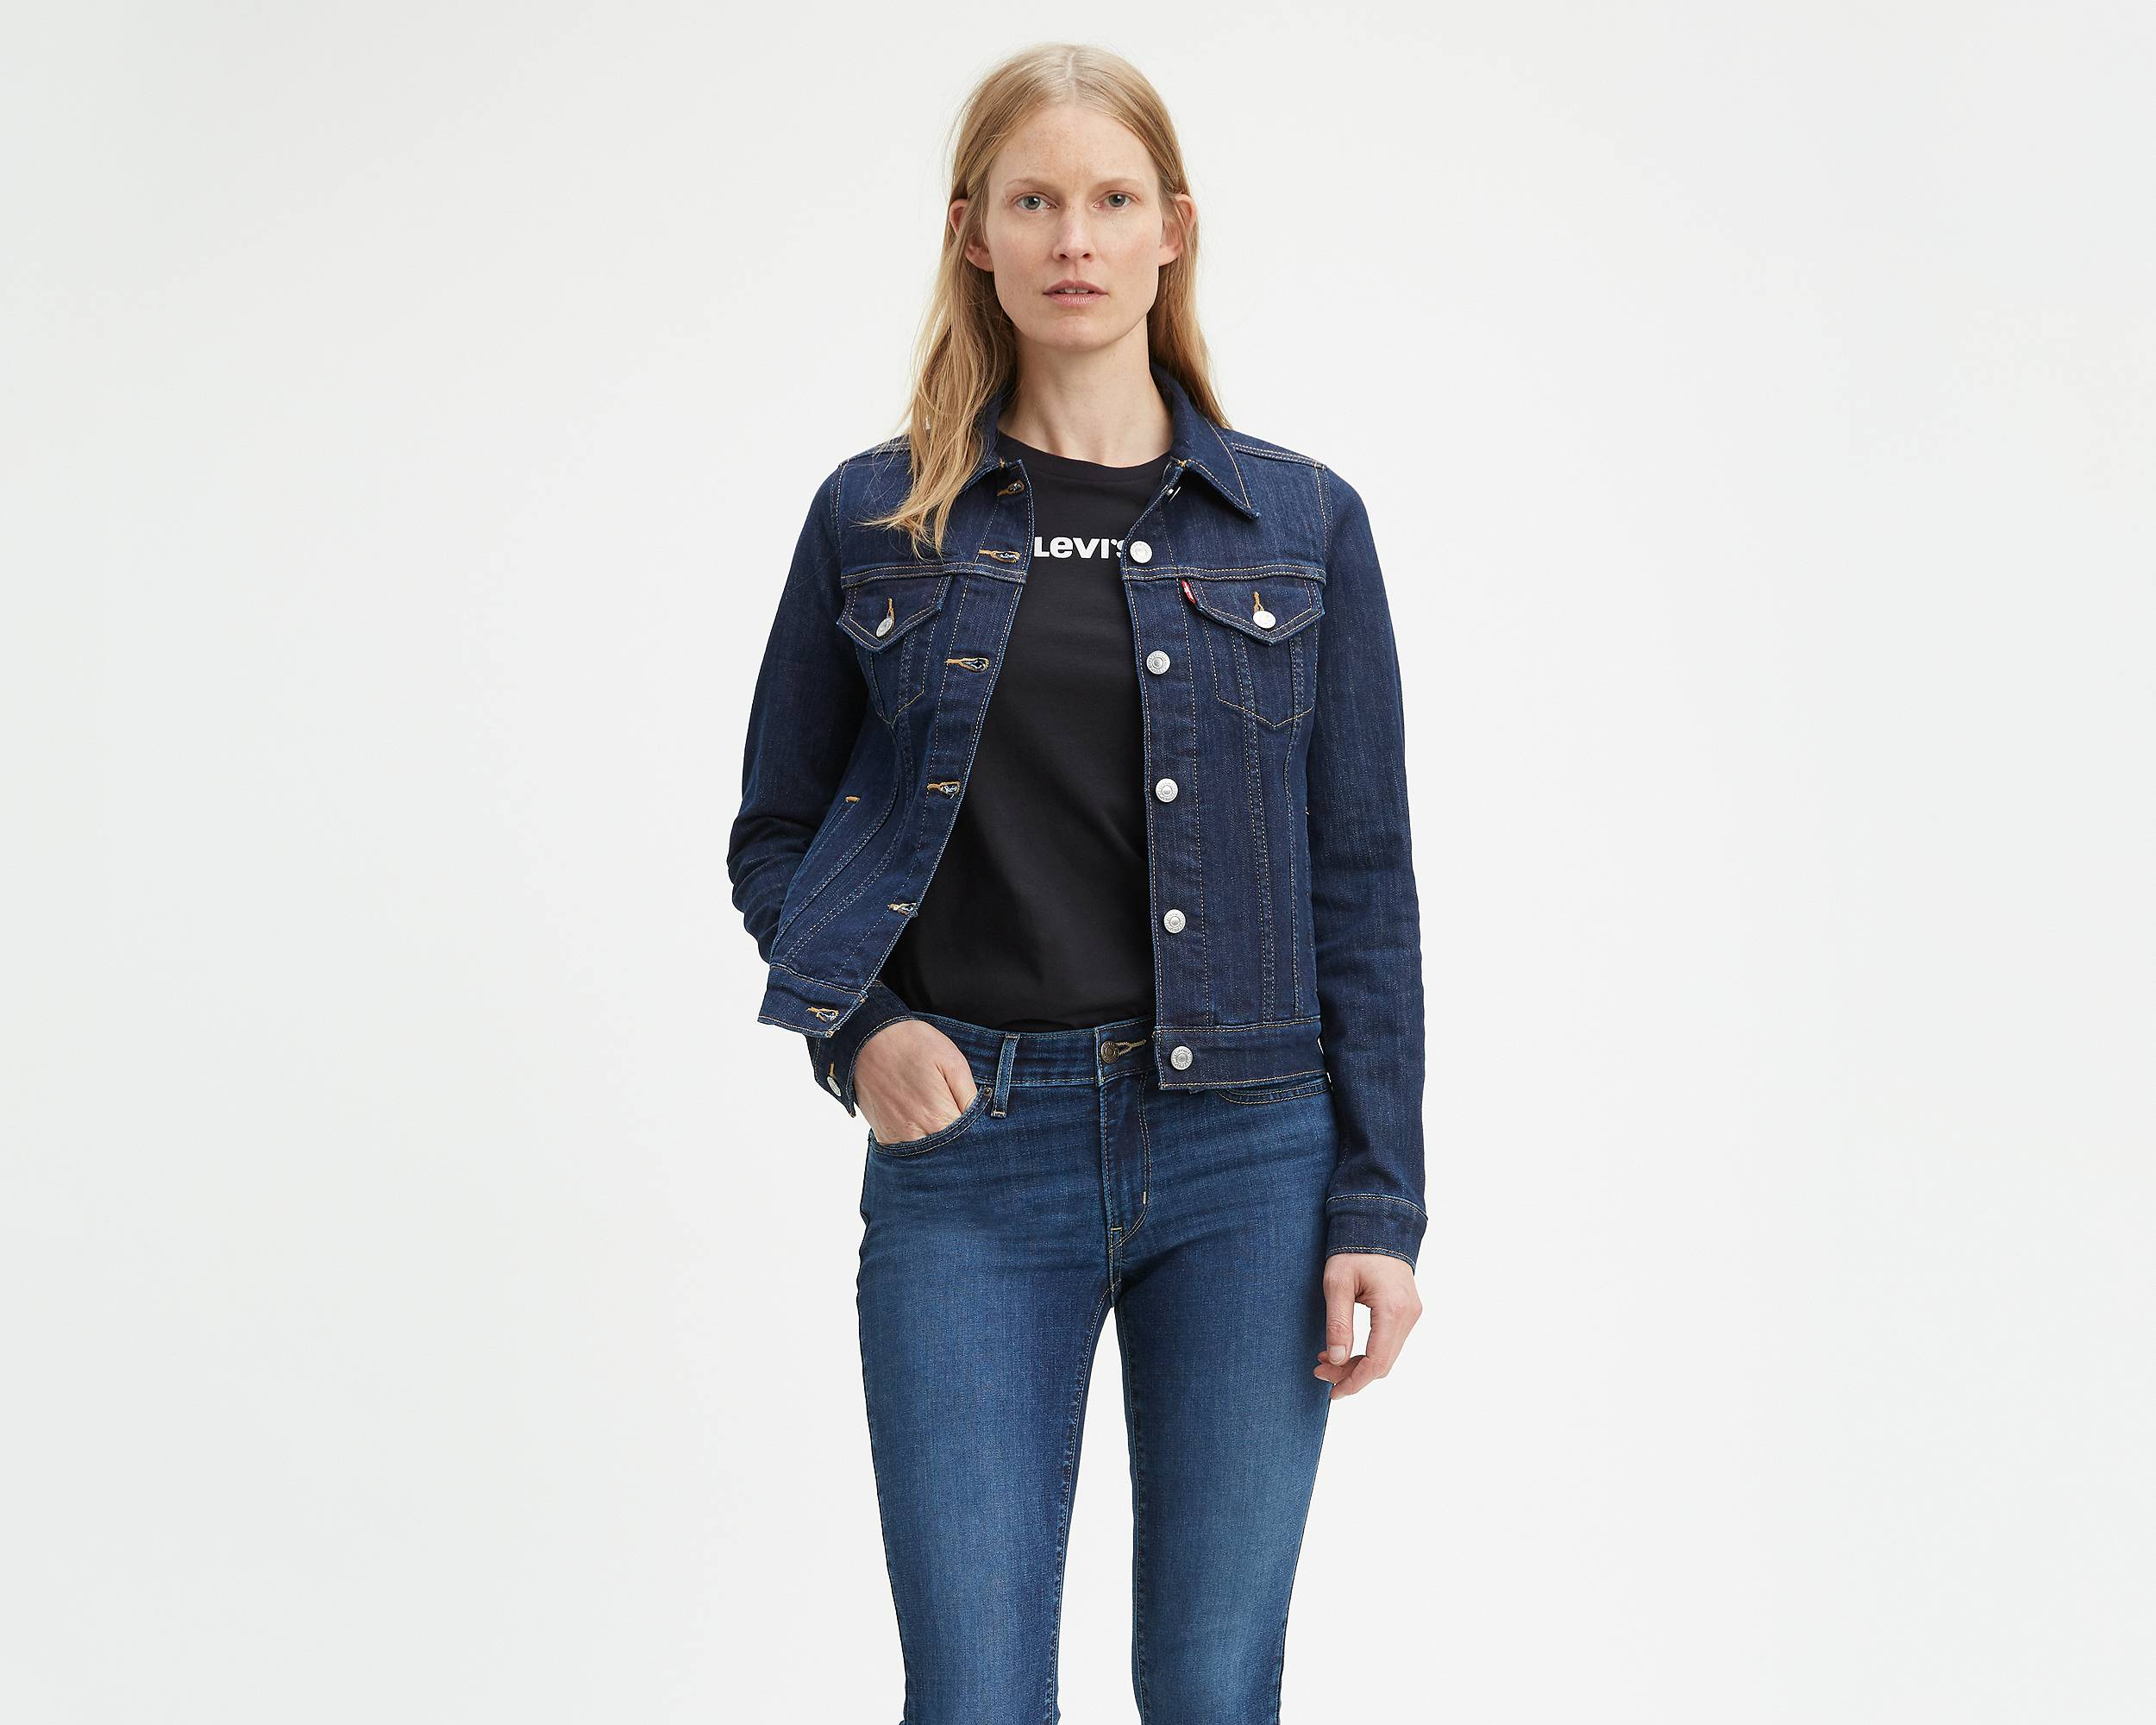 levis lady style clothing - photo #12